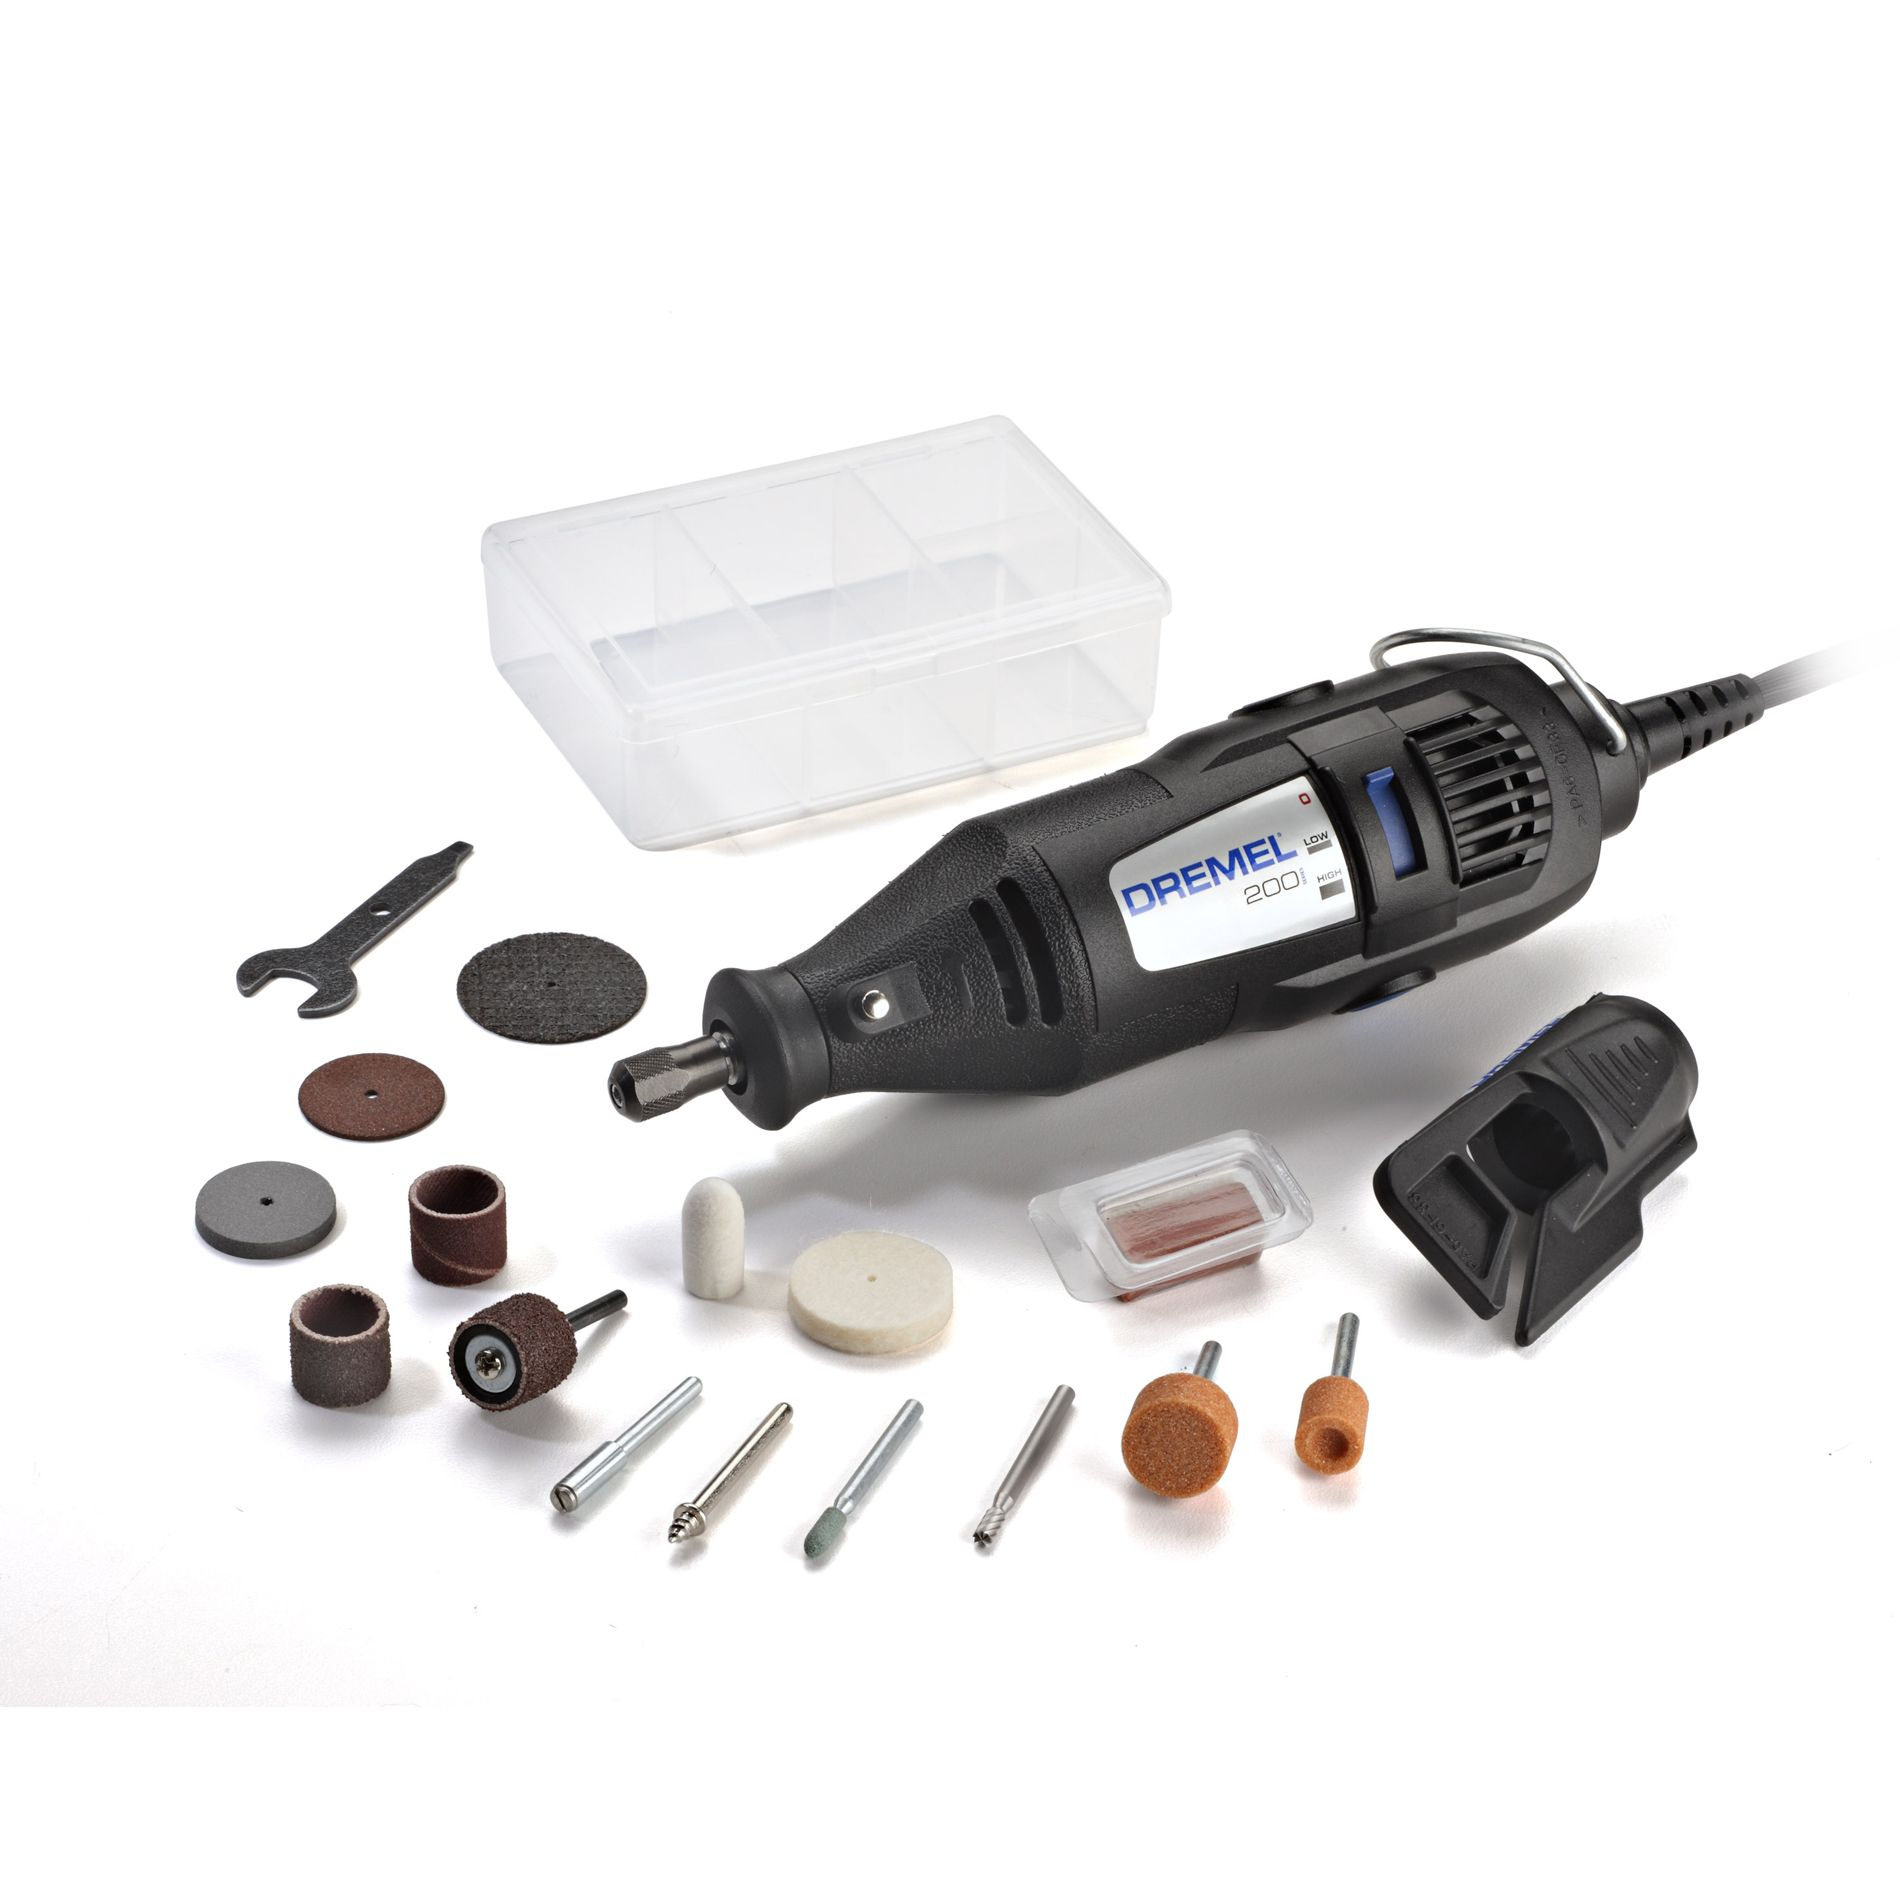 200-1/15 Two-Speed Rotary Tool Kit                                                                                               at mygofer.com